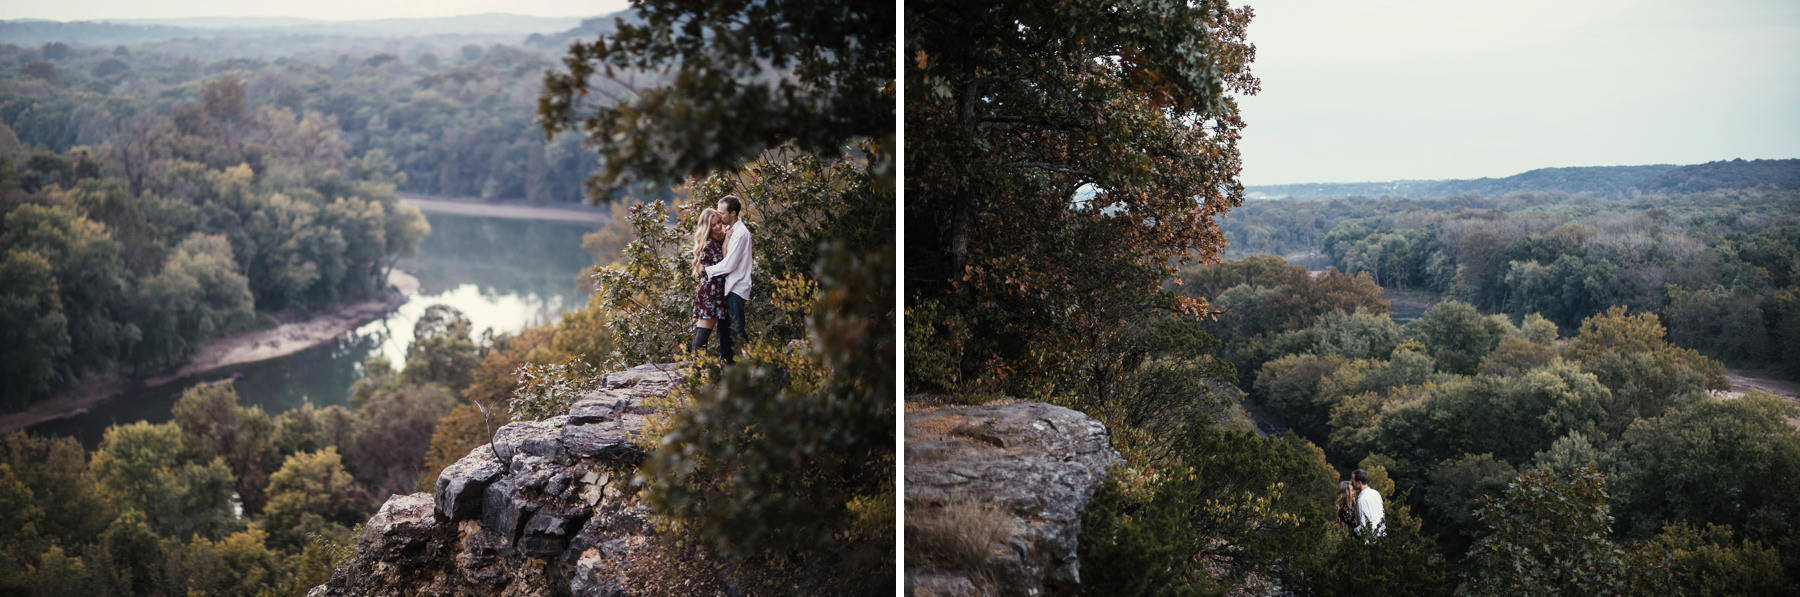 130_Castlewood State Park Engagement Session St. Louis, Missouri_Kindling Wedding Photography.JPG